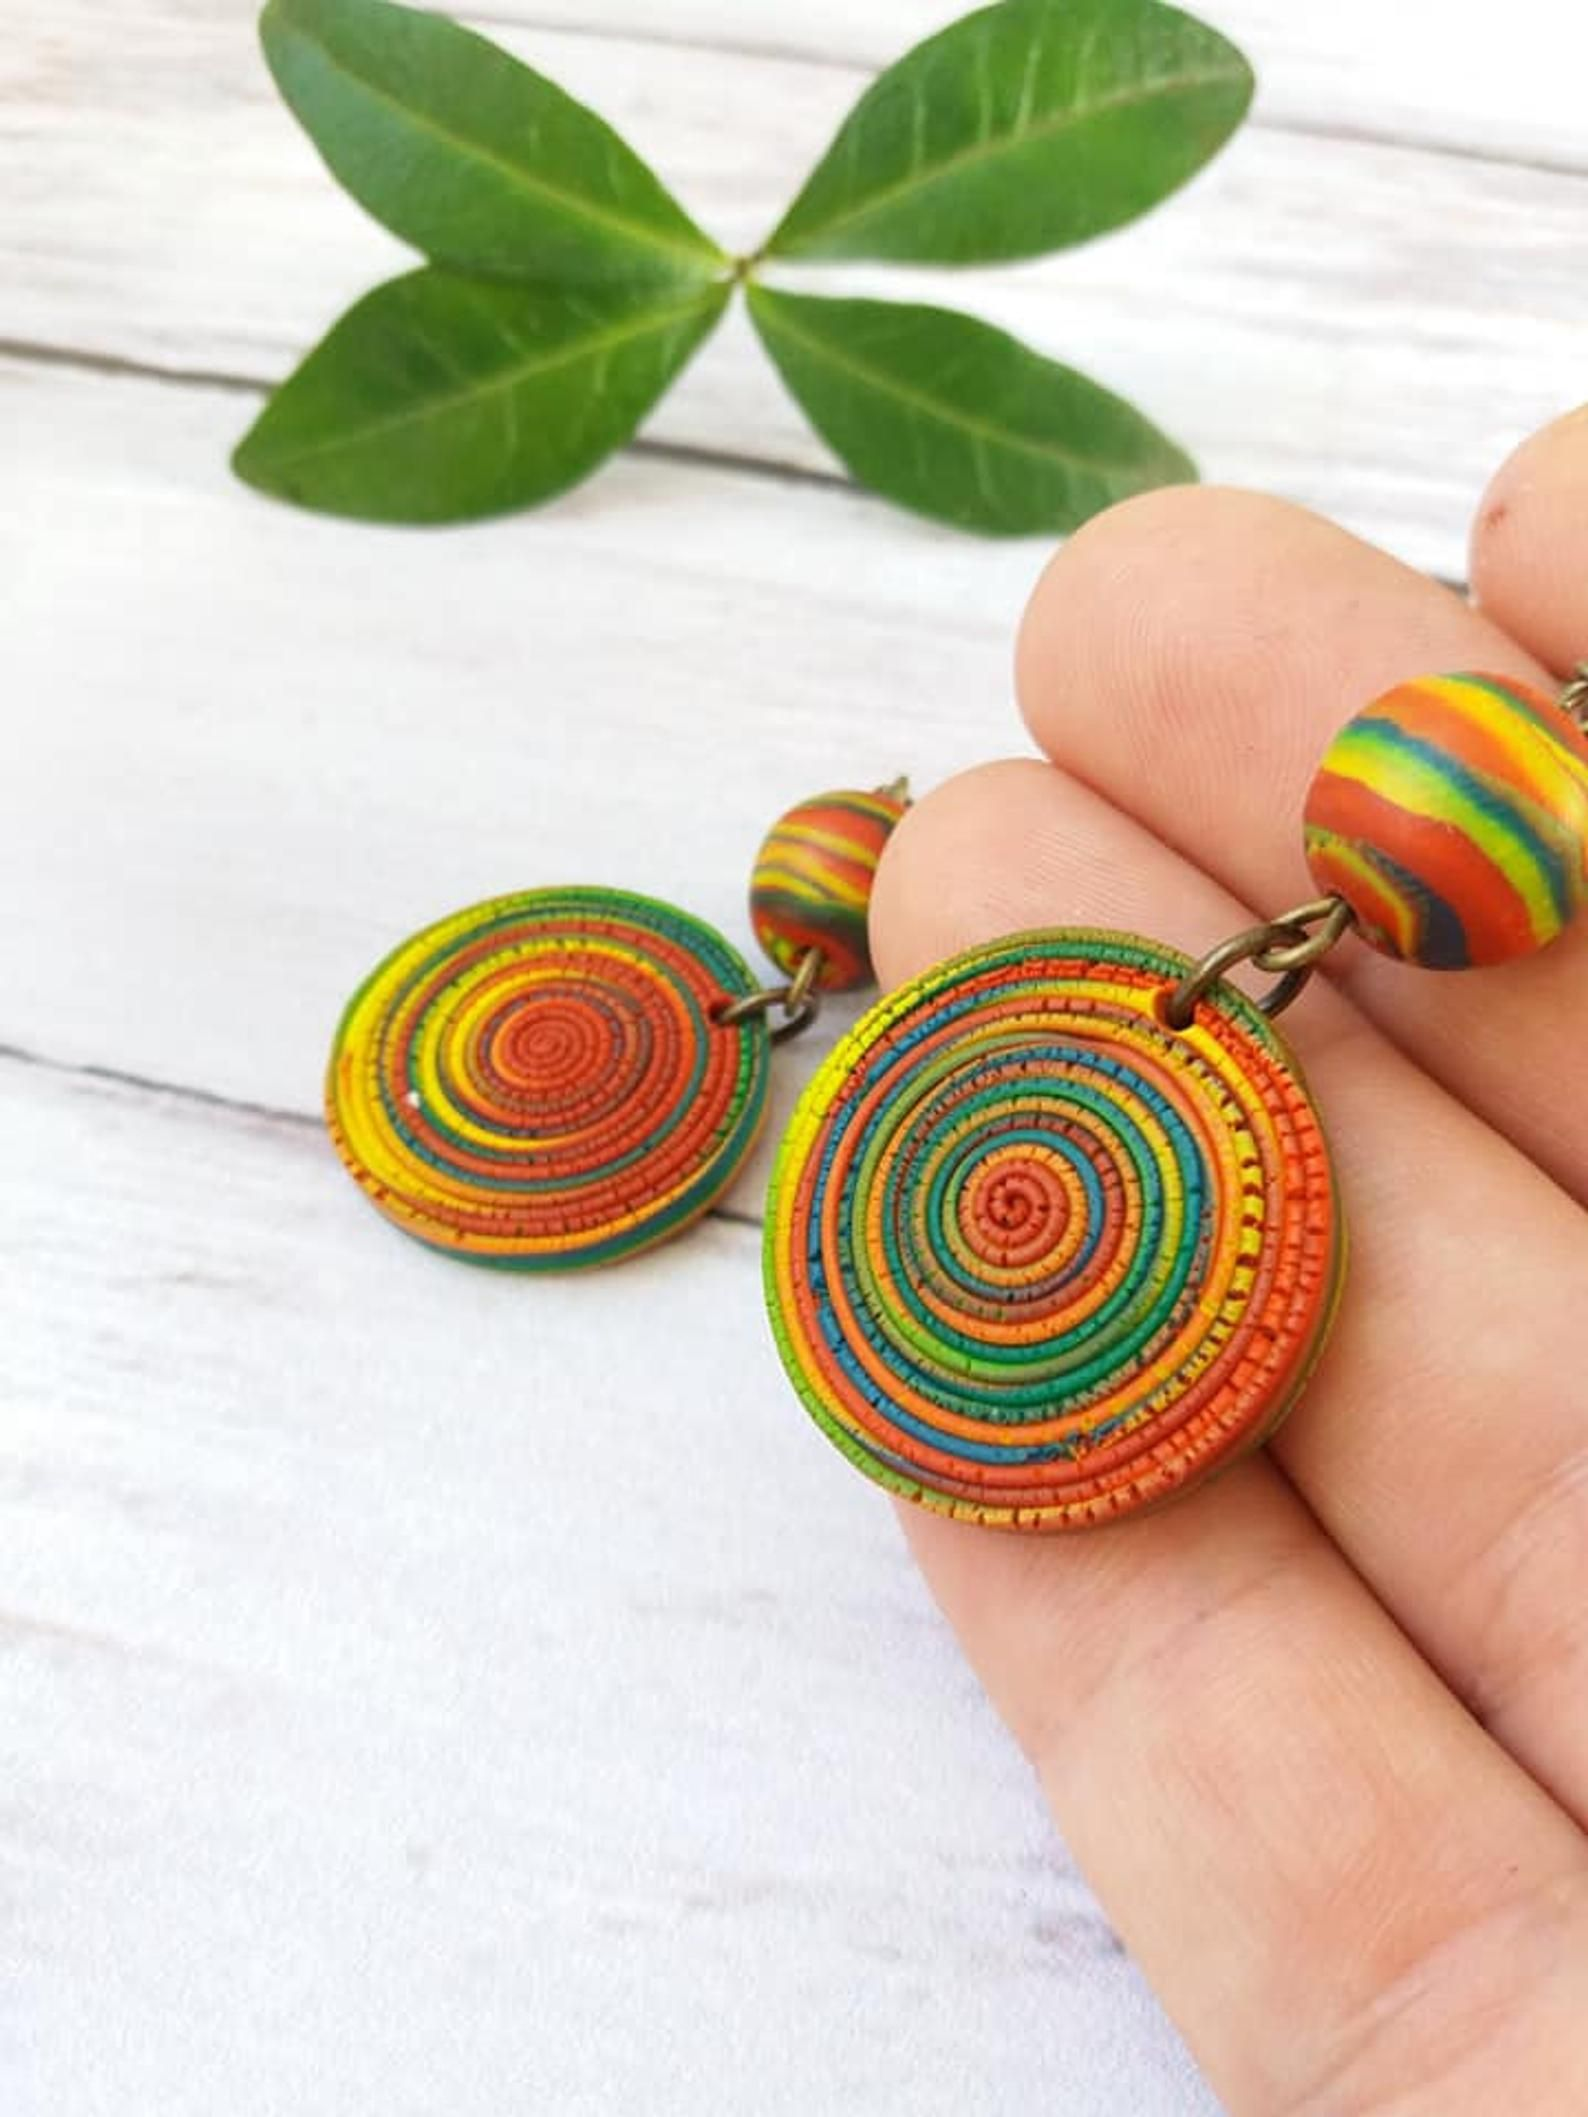 Selection of 4 unique ceramic pendants round big 60 mm pendant hand painted large handmade clay pendant for jewelry necklace pendant